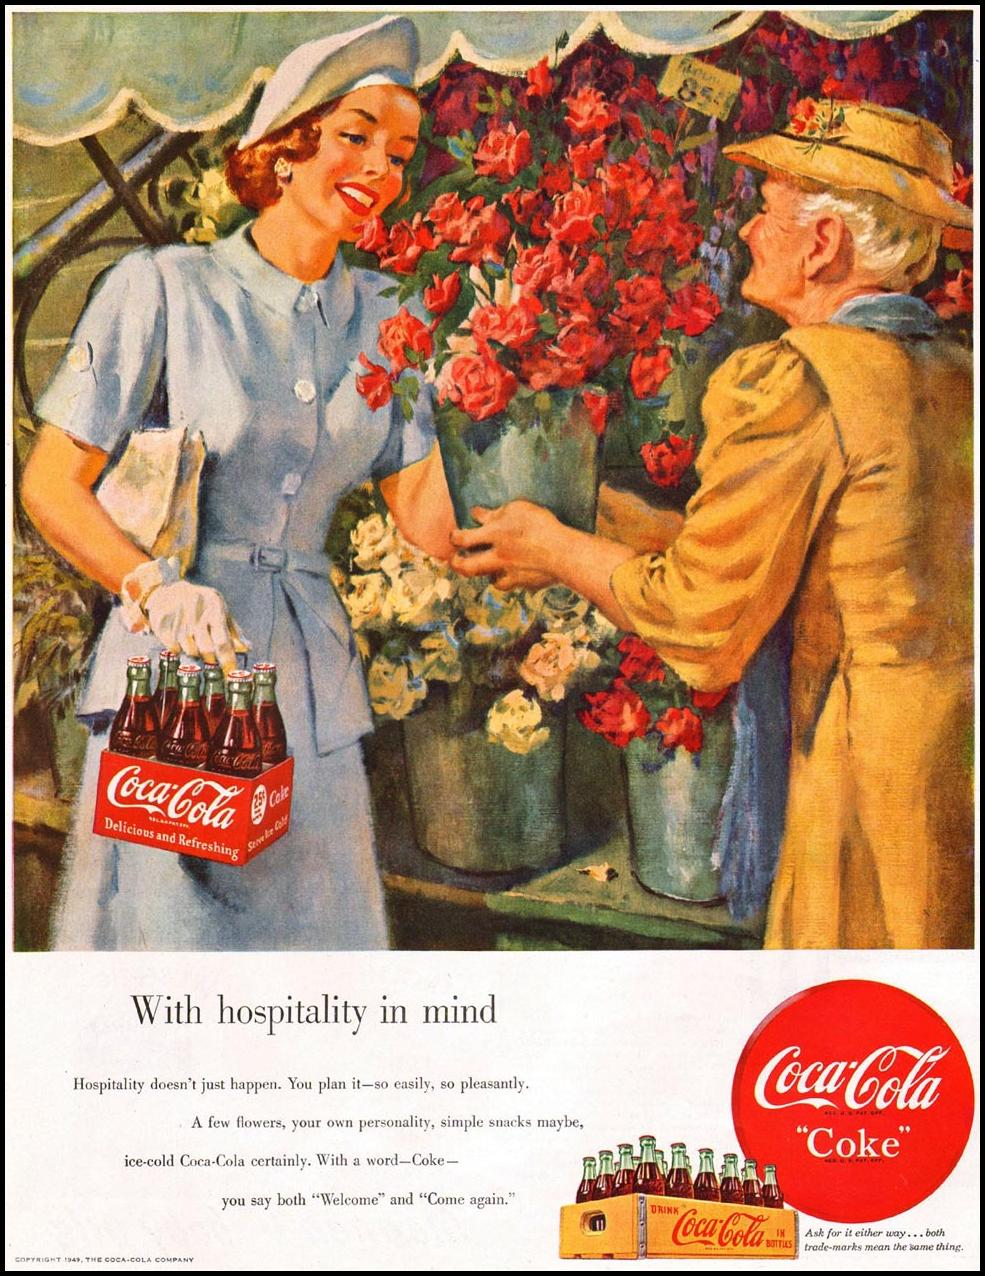 COCA-COLA